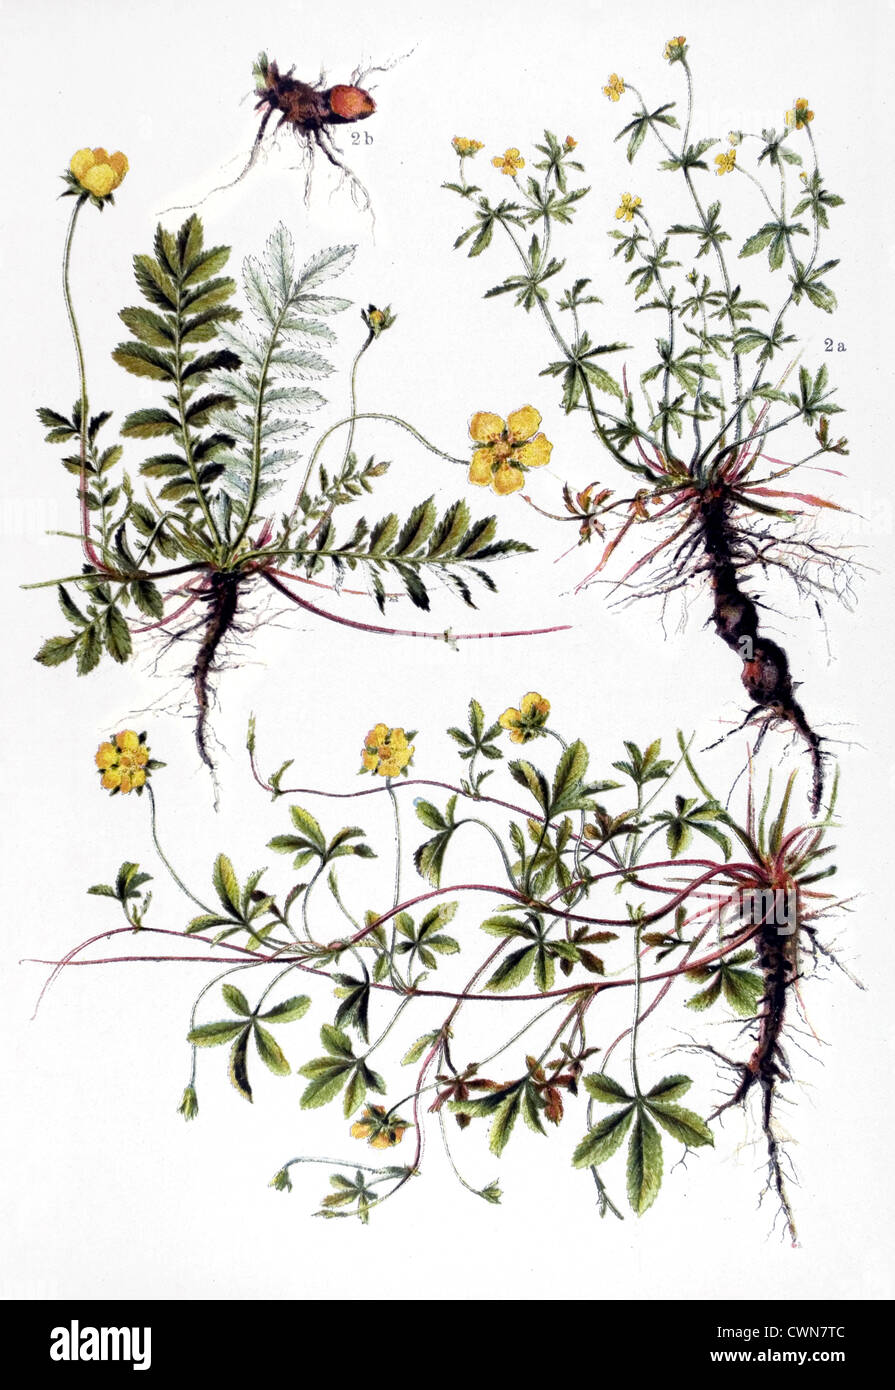 Cinquefoil and other herbs Stock Photo